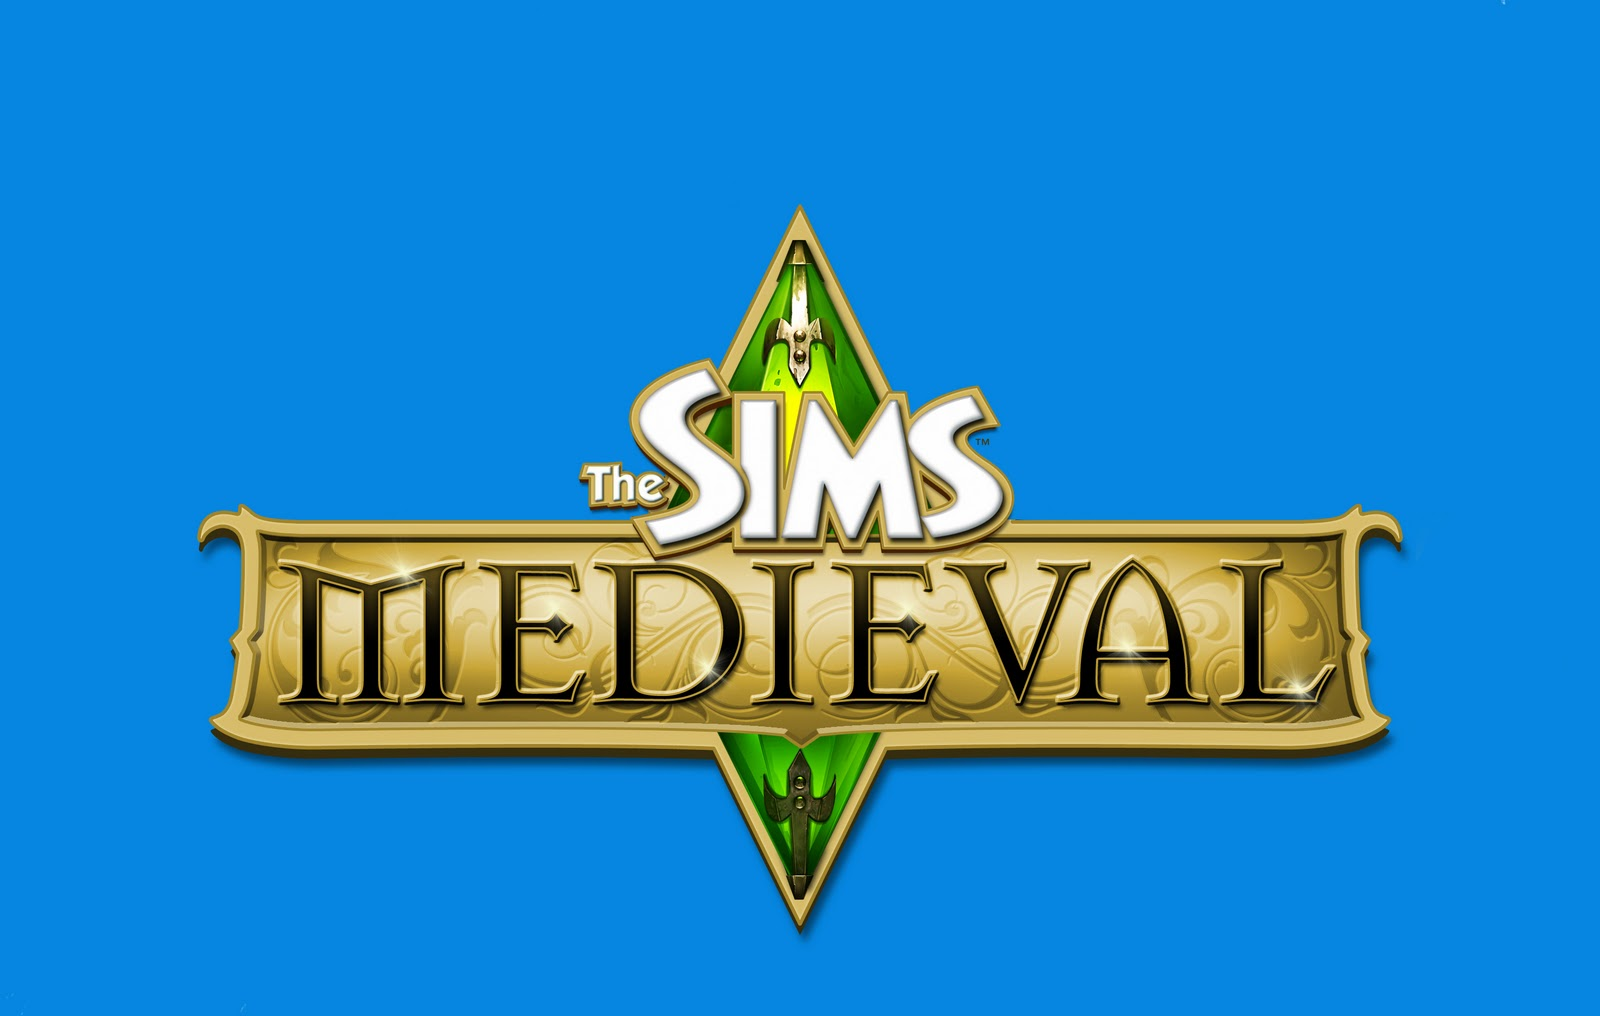 The Sims Medieval HD Wallpapers Desktop Wallpapers 1600x1016